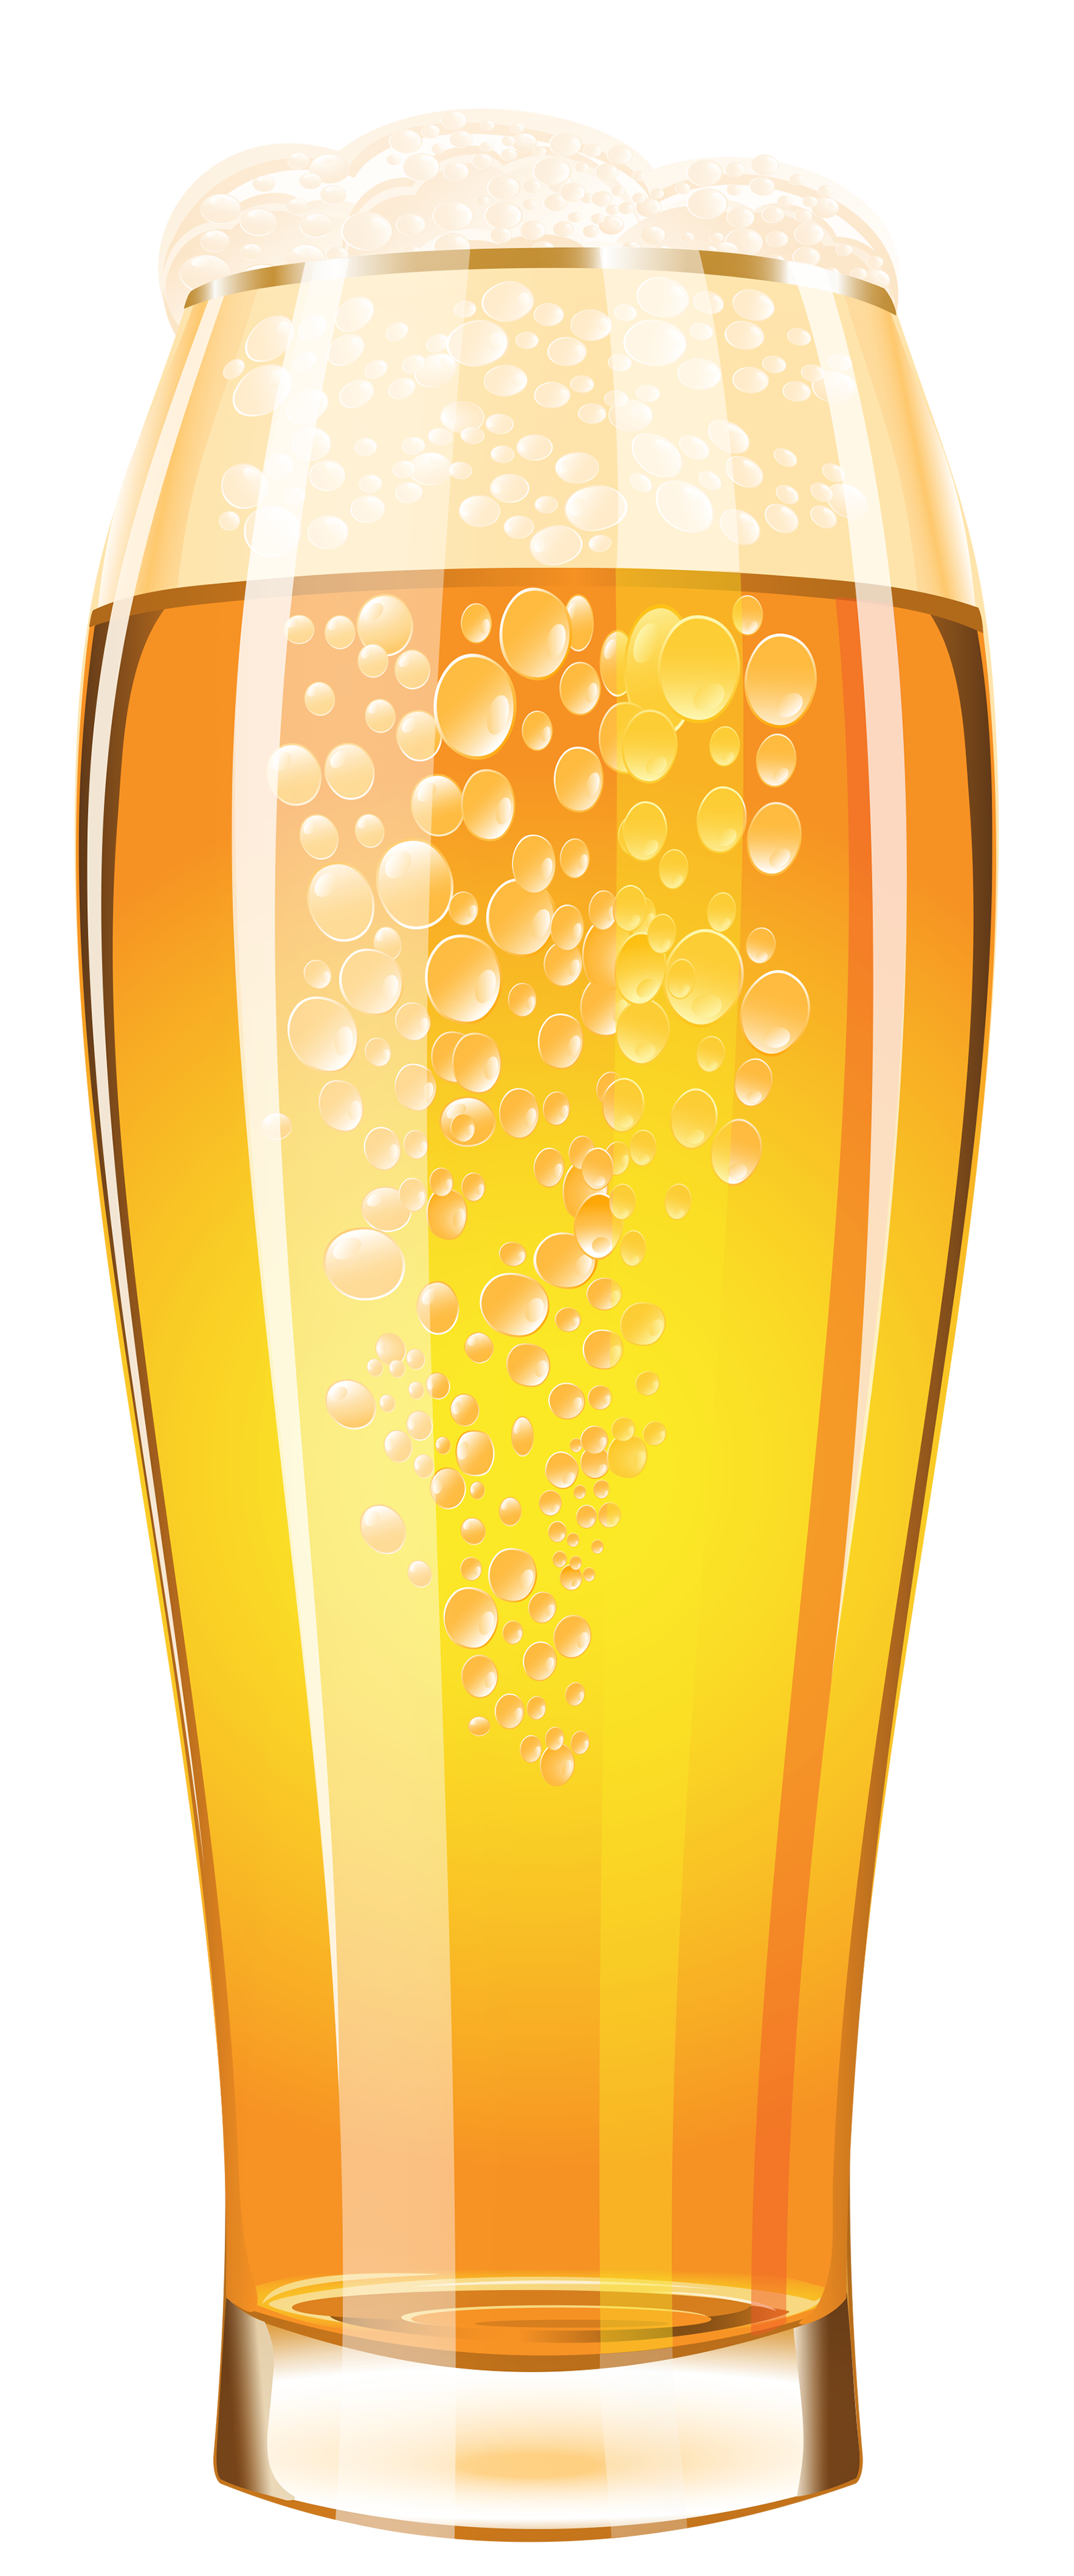 Glass of Beer PNG Vector Clipart Image.